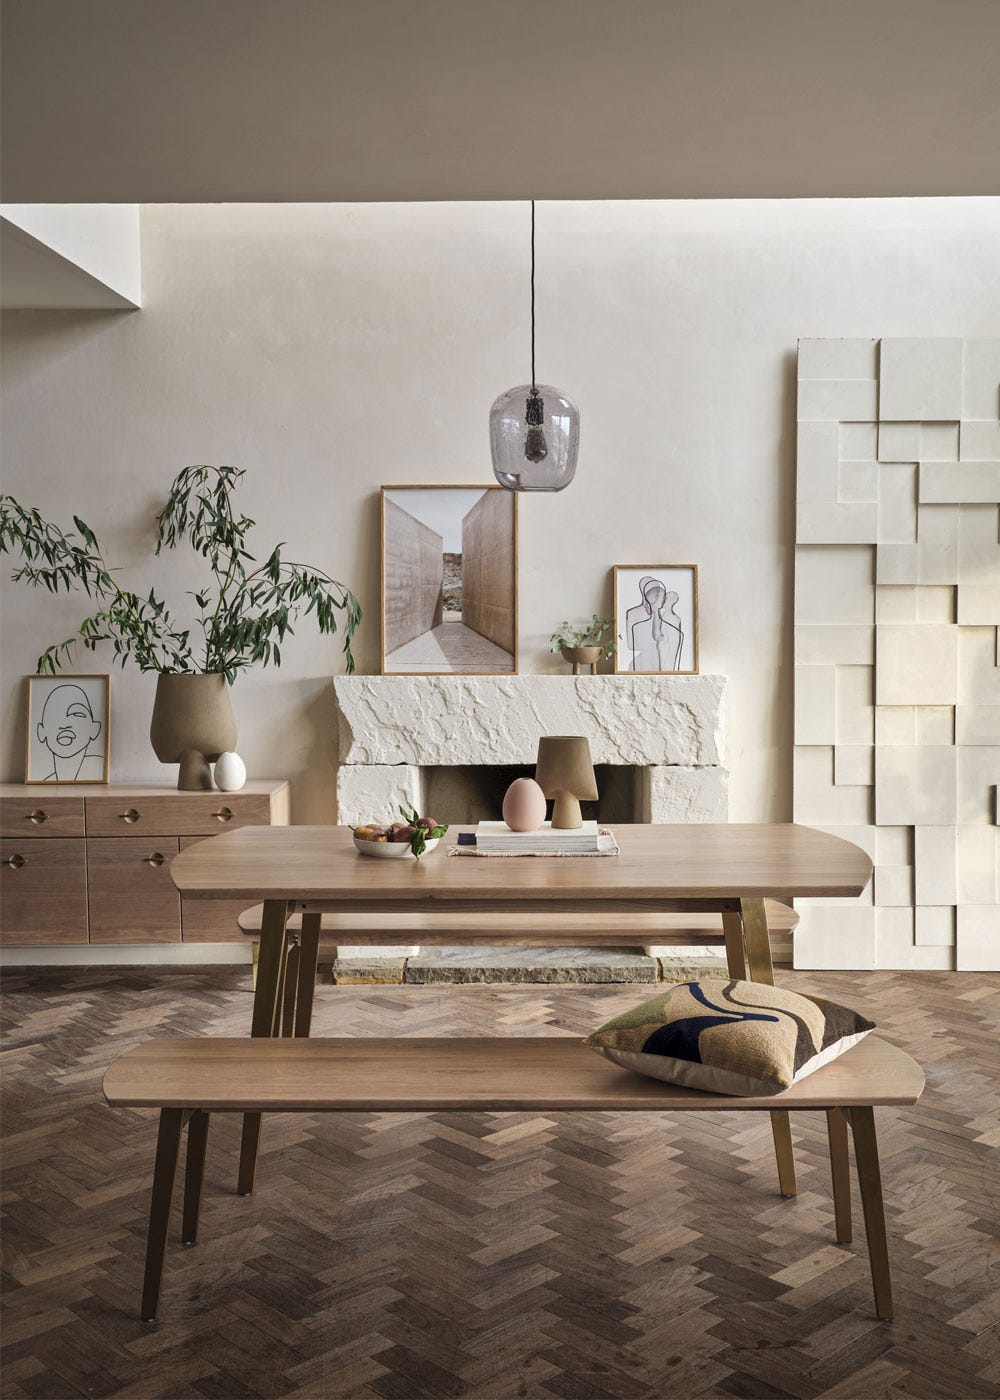 As shown: Crawford dining table and bench, bubble pendant